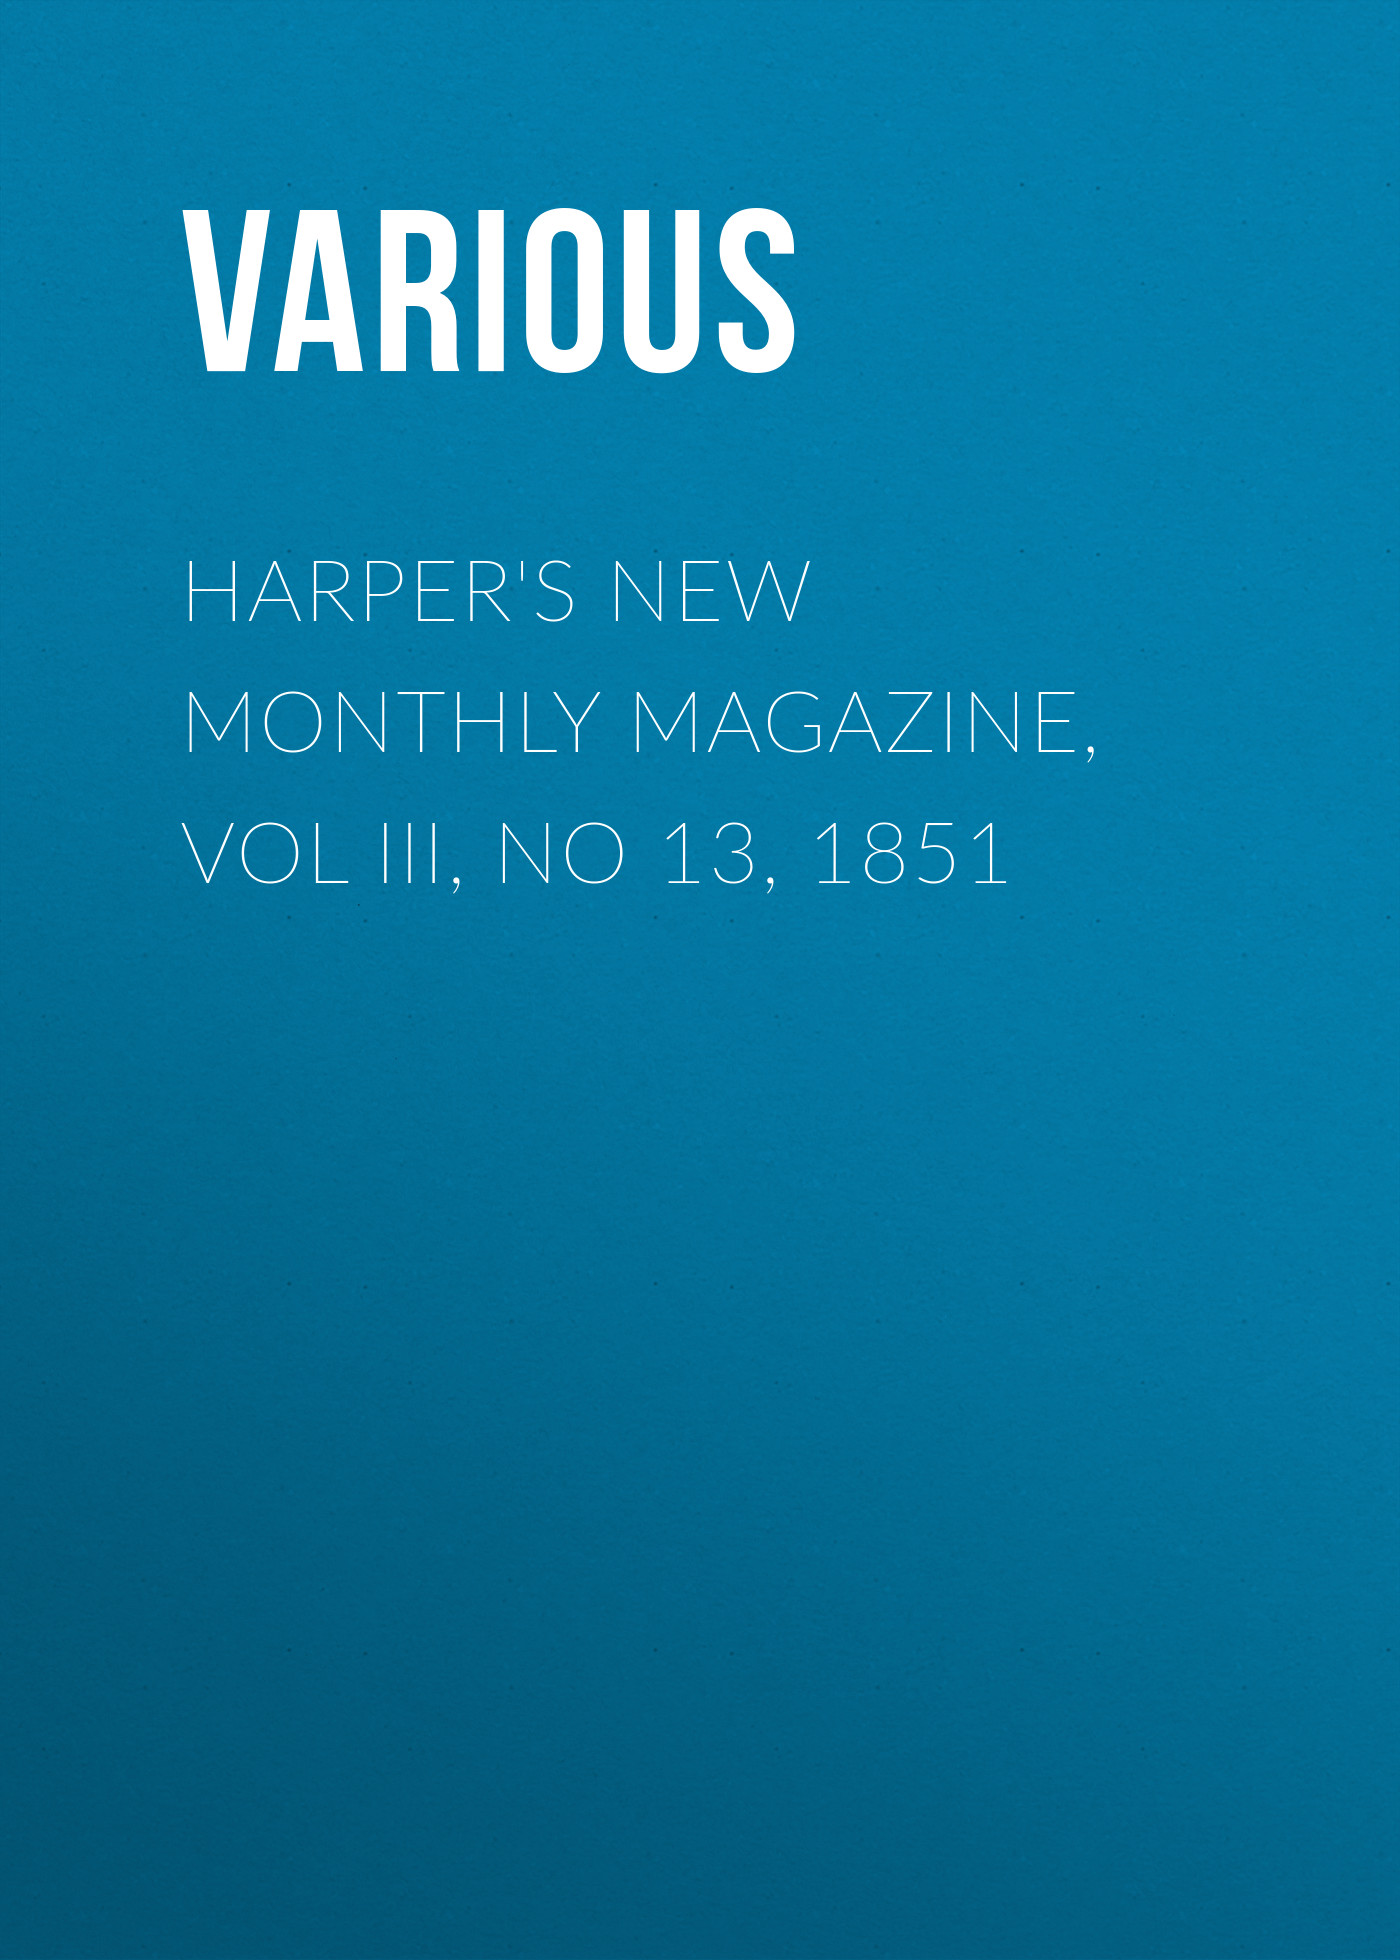 Various Harper's New Monthly Magazine, Vol III, No 13, 1851 various harper s new monthly magazine vol iv no xx january 1852